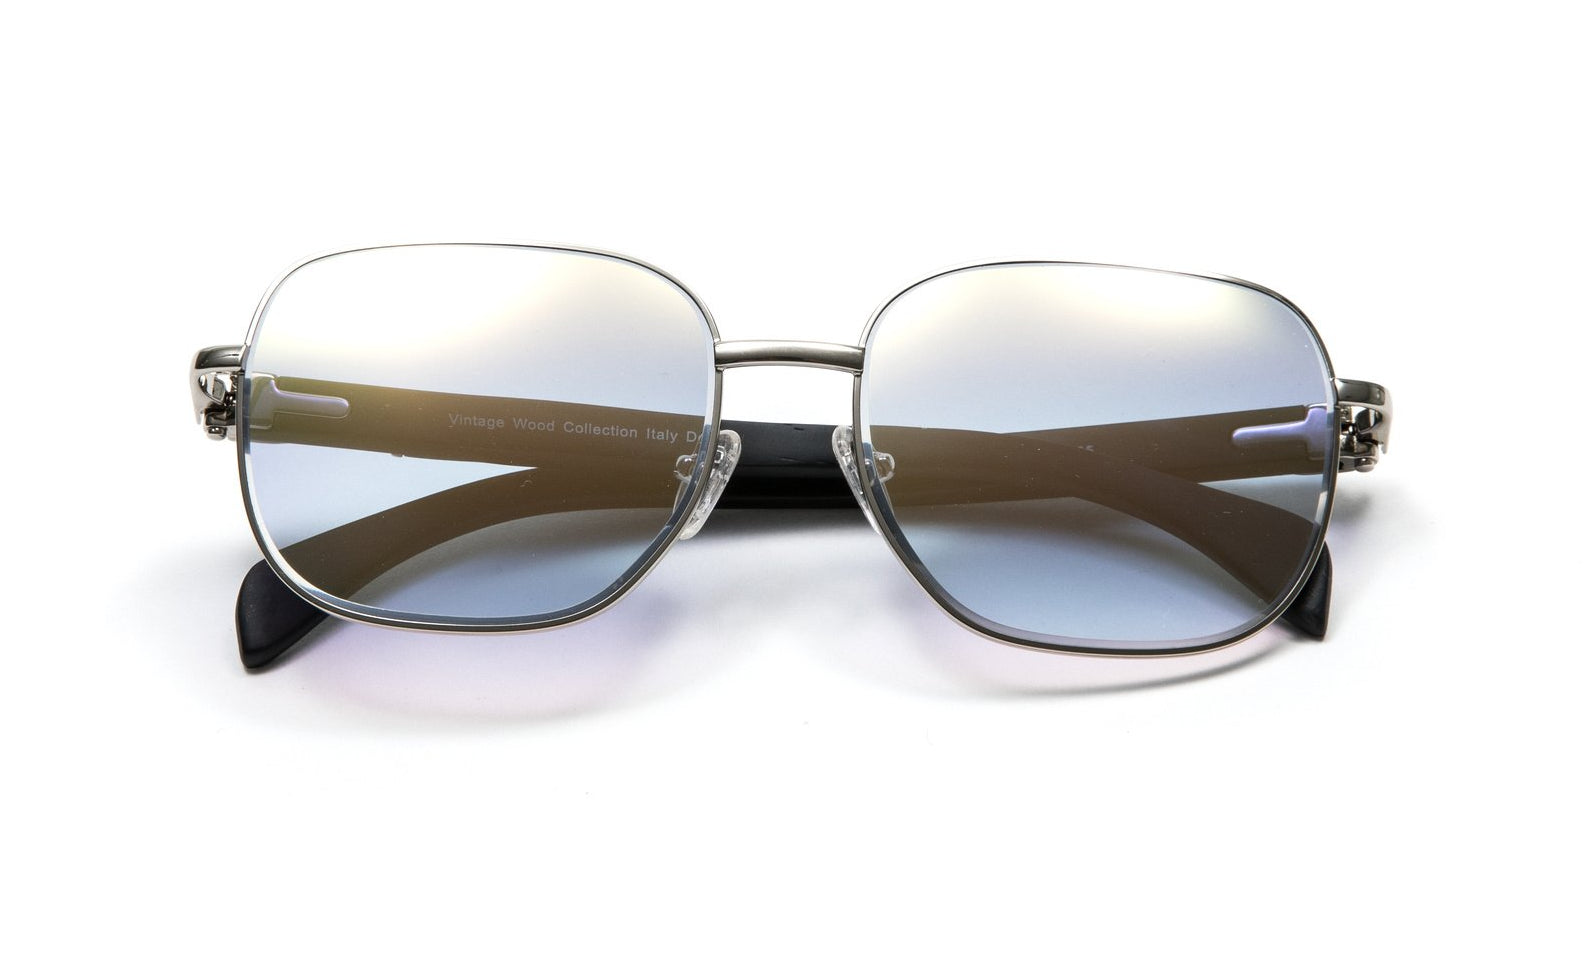 Square Silver Full Rim Frame, Black Wood Temples, Gradient Gray White Gold Flash Lens